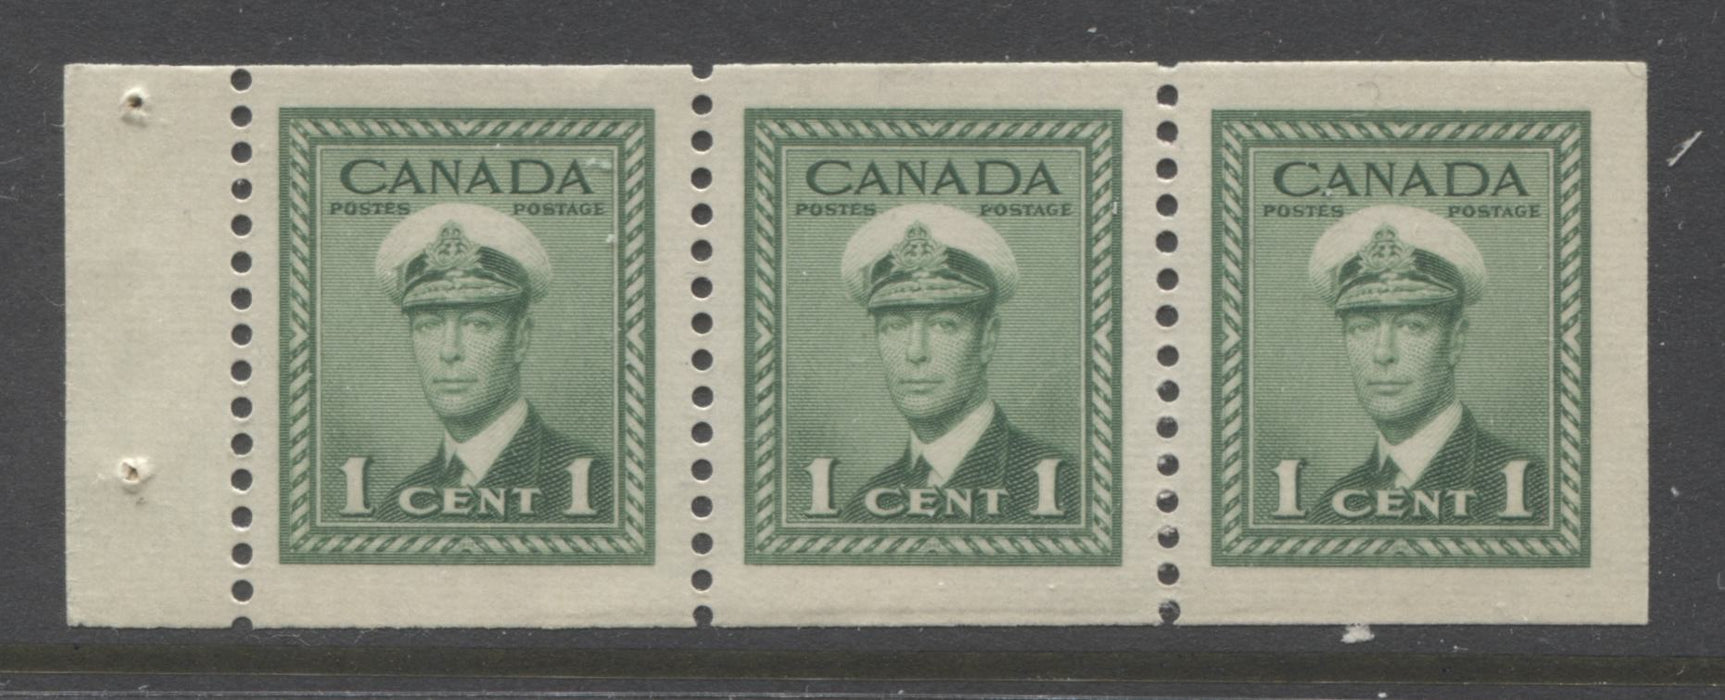 Canada #249c 1c Green King George VI, 1942-1949 War Issue, A Very Fine Mint NH Example of the Chewing Gum Booklet Pane Brixton Chrome